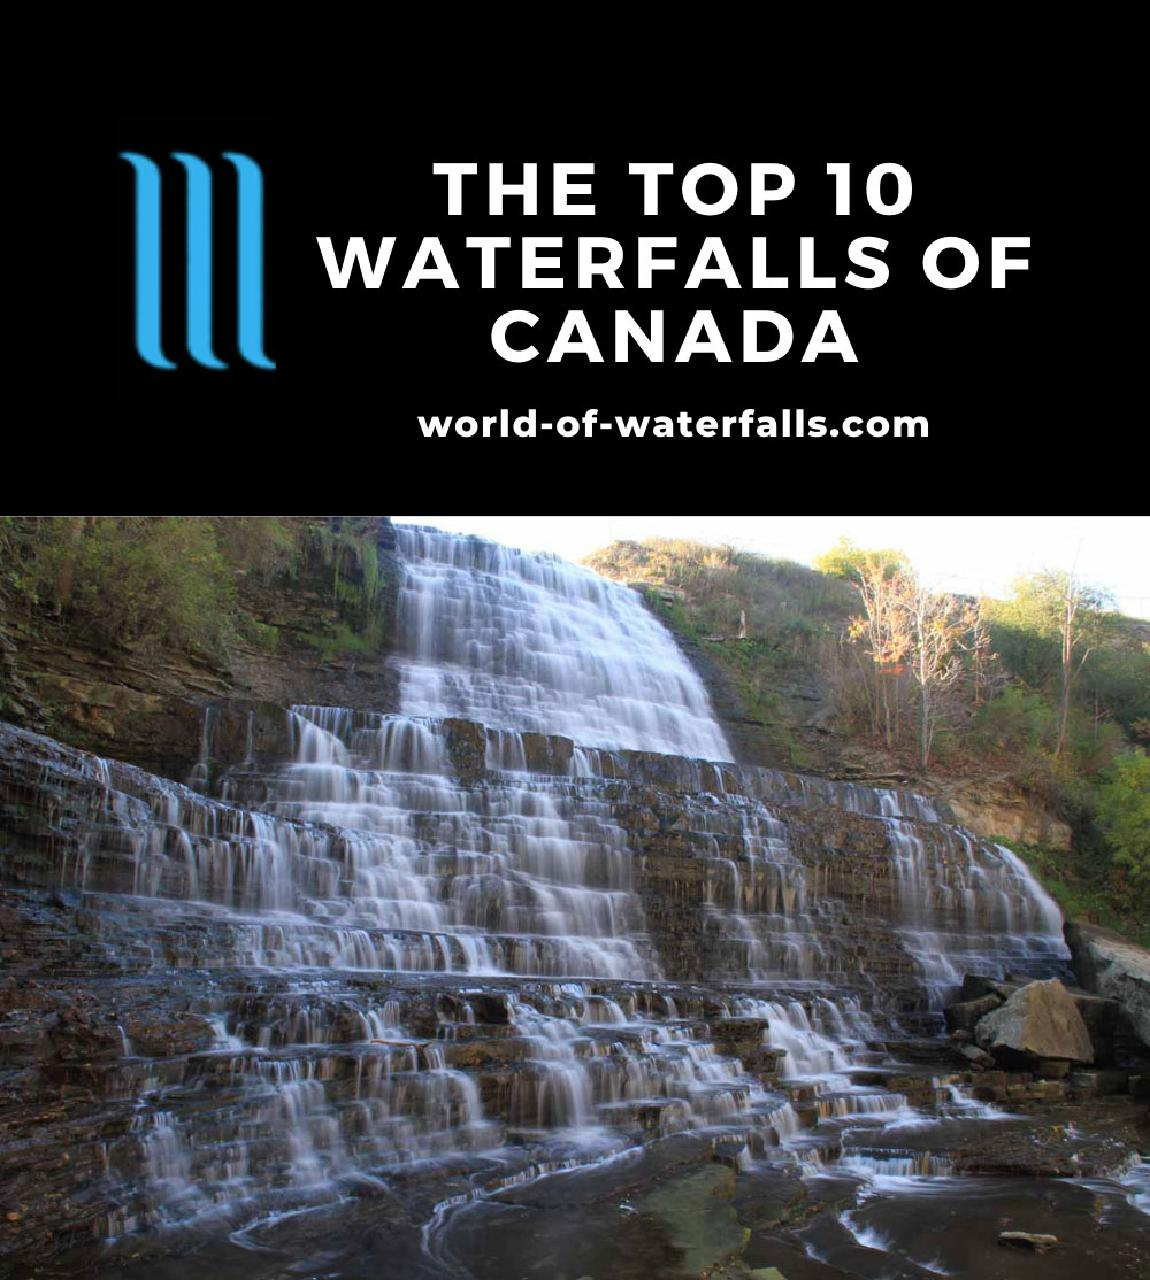 The Top 10 Waterfalls of Canada